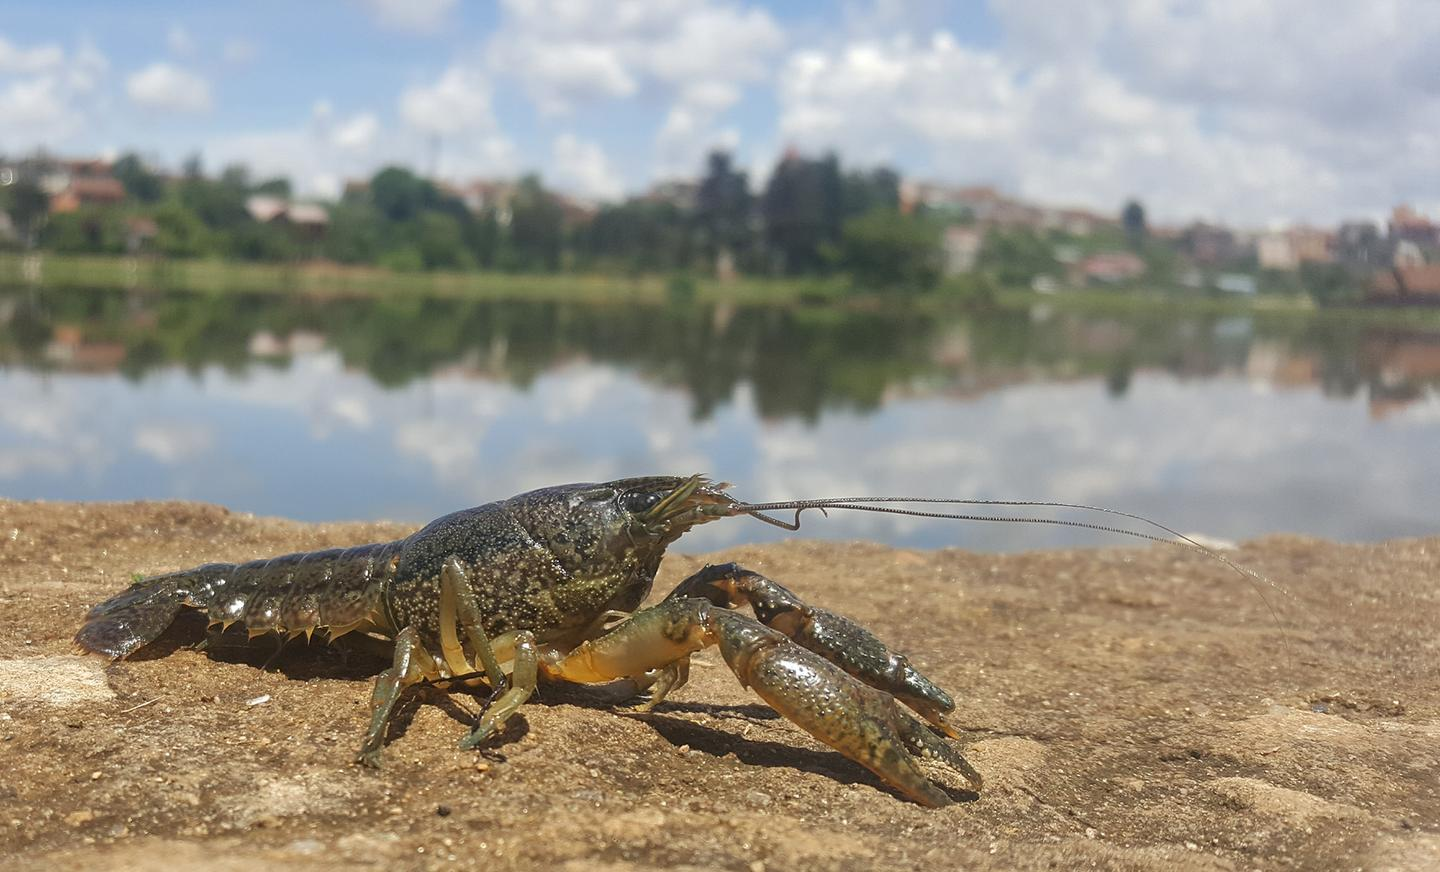 In Madagascar, the populations of marbled crayfish have increased dramatically due to excessive asexual reproduction